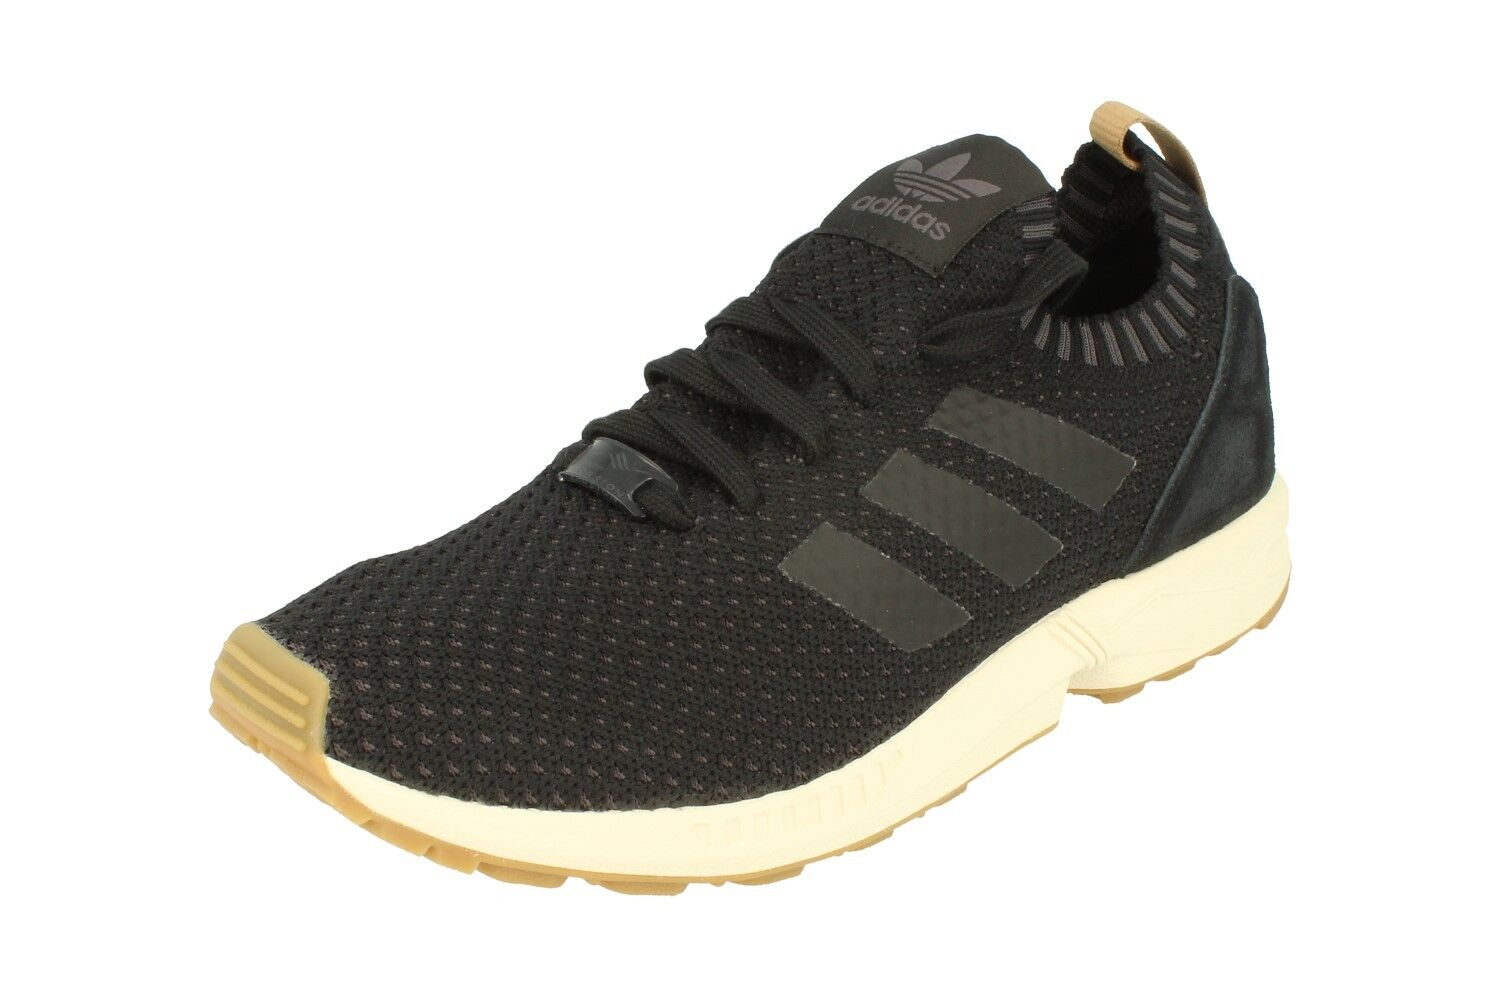 Adidas Originals Zx Flux Pk BA7371 Mens Running Trainers Sneakers BA7371 Pk c893c6